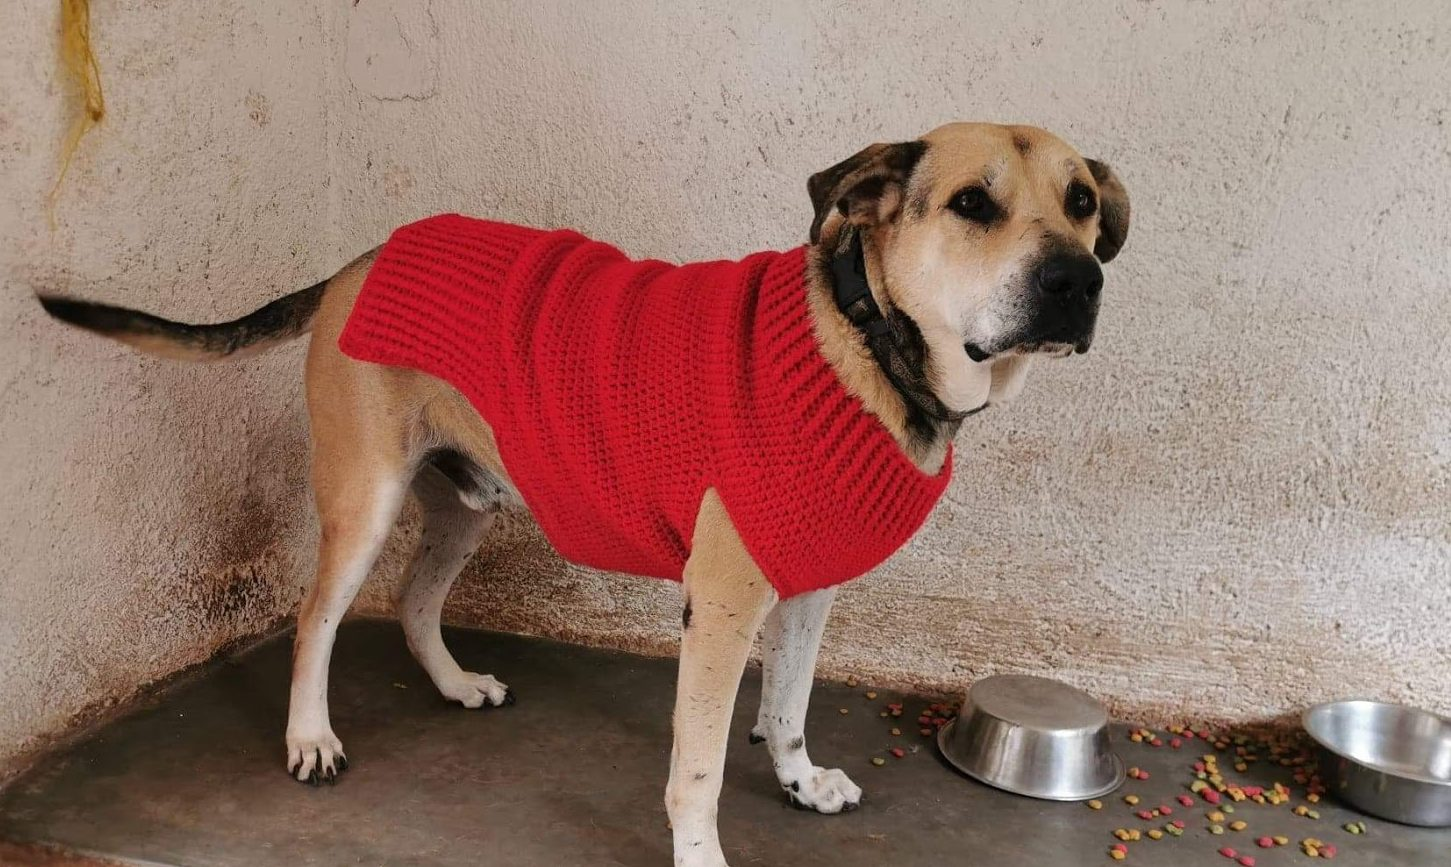 The Doggy Sweater Size Extra Large Crochet It Creations